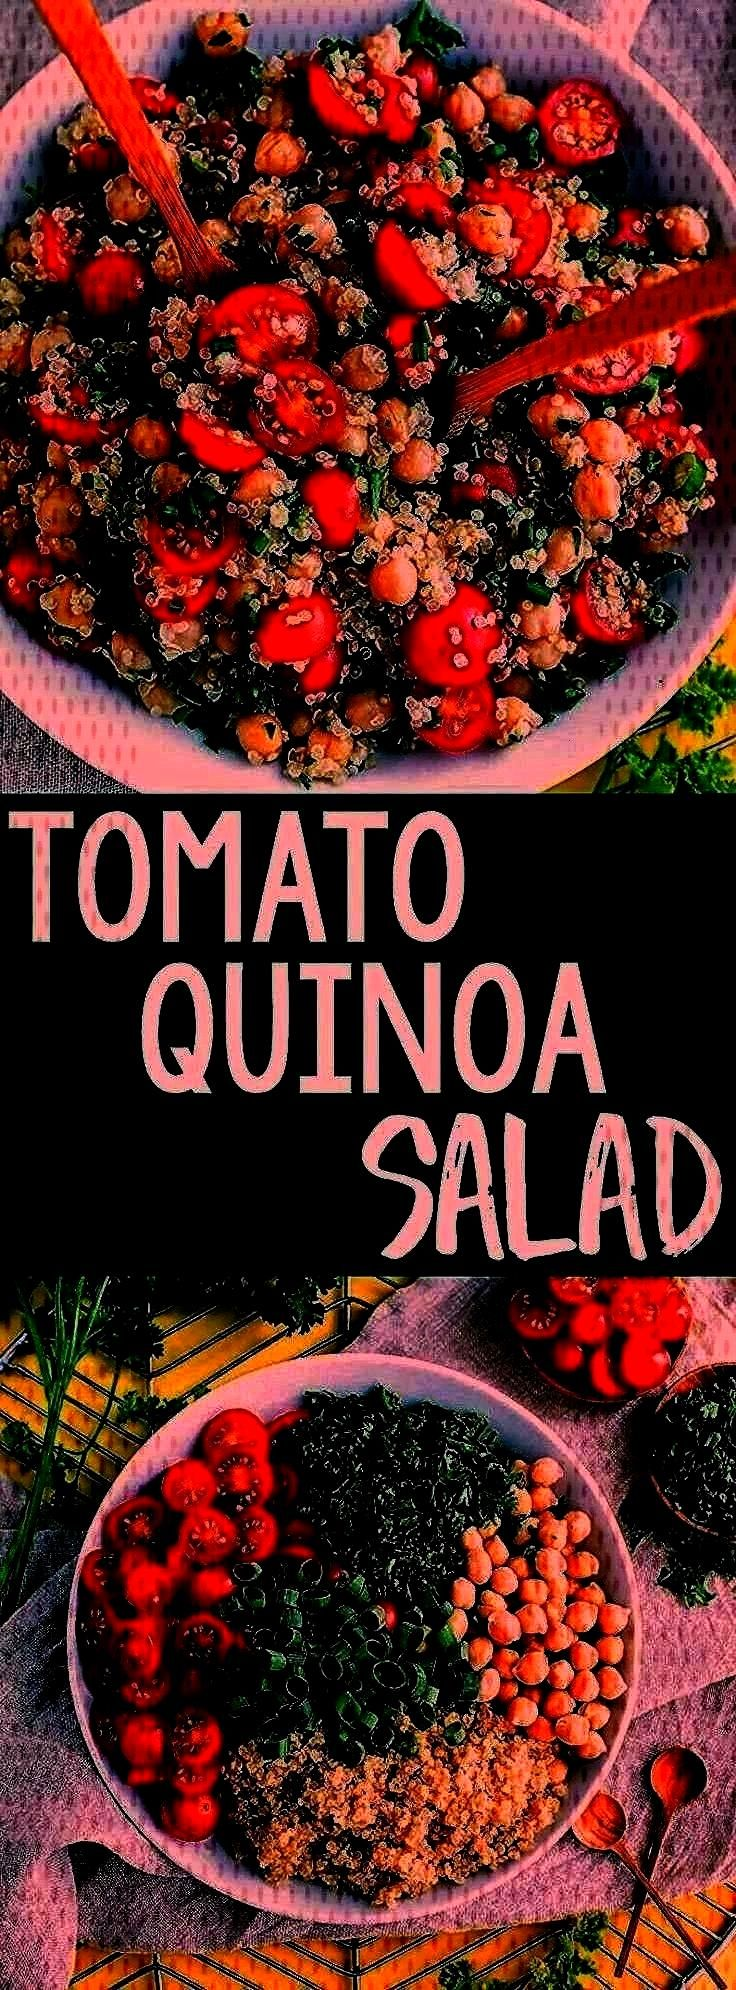 quinoa recipe to our meal prep game! This Tomato Quinoa Salad is fast, flavorful, and easily made i